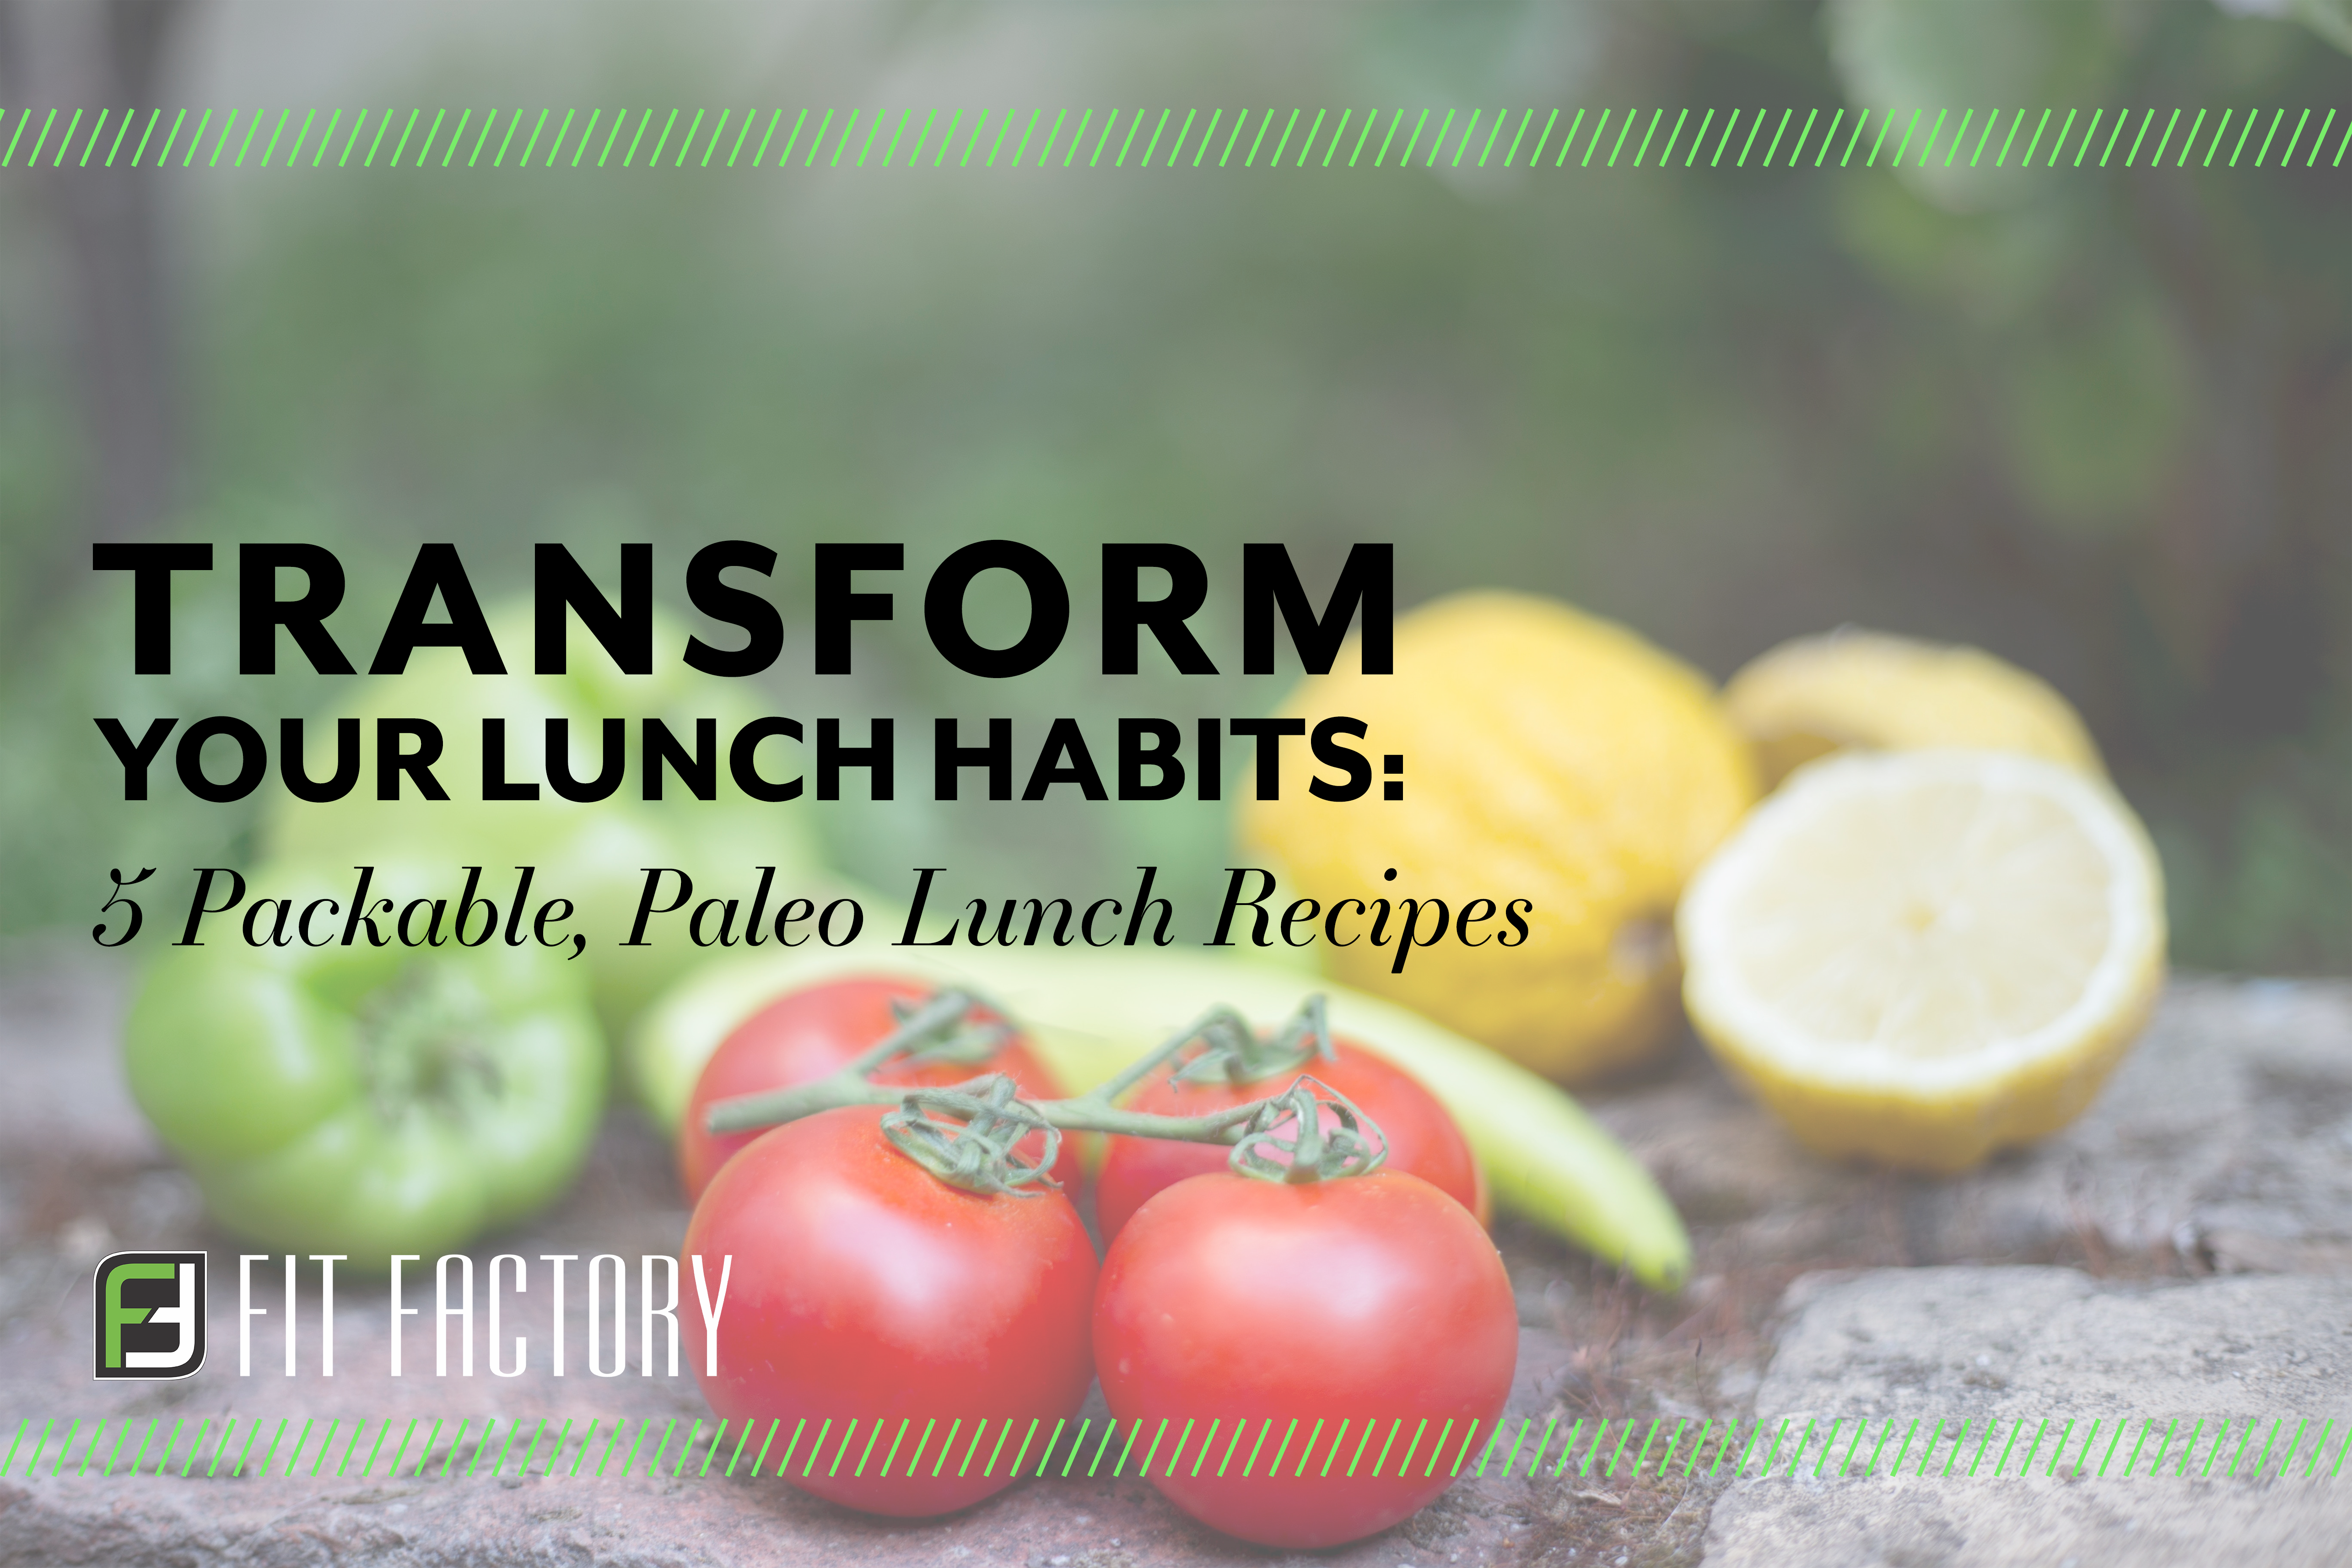 Transform Your Lunch Habits: 5 Packable Paleo Lunch Recipes